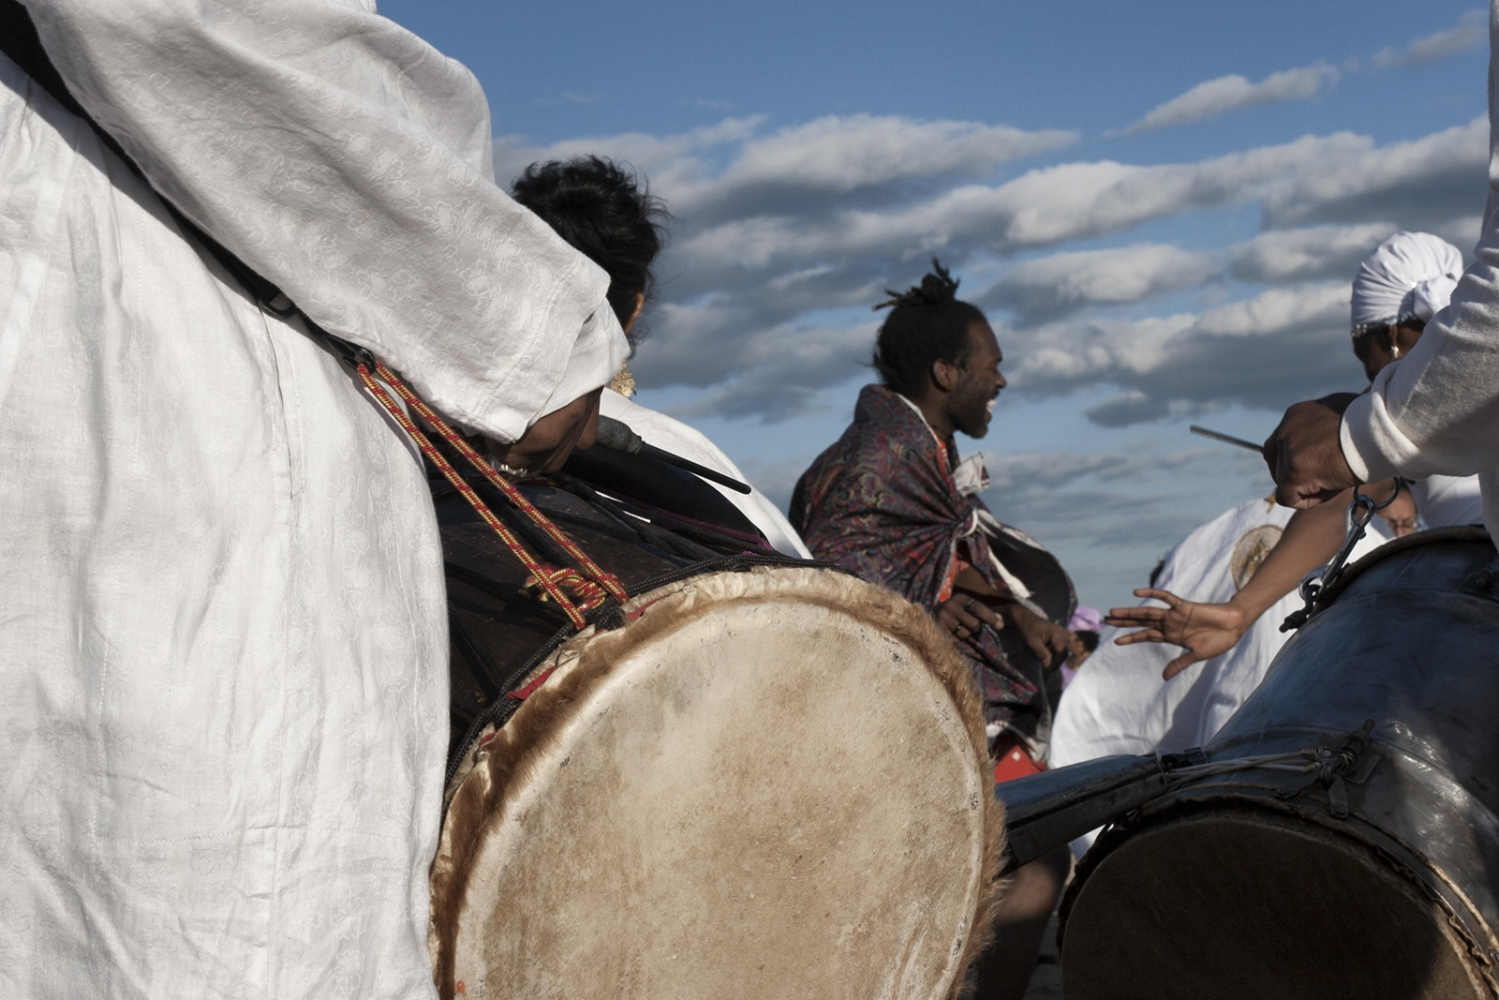 "The African drum circle is an integral part of the Tribute. The drums permeate the ceremony with alternating feelings of joy and melancholy. The beat is a physical thing that deepens the sense of awe and remembrance that falls over the crowd as the sun goes down. The African rhythms emphasize the relationship and continuity from the old continent and its vibrant religions to the people gathered in Coney Island to remember the victims of the Middle Passage. The drums also echo the rhythms of the ships and the seas, something the captives must have felt in their cramped spaces. They were packed in holds as tightly as inhumanely possible. The alloted space ranged between 6' x 1'4"" for an adult male to 4' 6"" x 1' for a young girl. A typical ship carried up to 600 captives. #documentaryphotography #photojournalism #visura #burndiary #canon #brooklyn #nyc #newyorkcity #historicnyc #coneyisland #coneyislandbeach #panafrican #panafricanism #blacklivesmatter #remembrance #melancholy #visualsoflife #drumcircle #africandrums #middlepassage #tributetotheancestors"